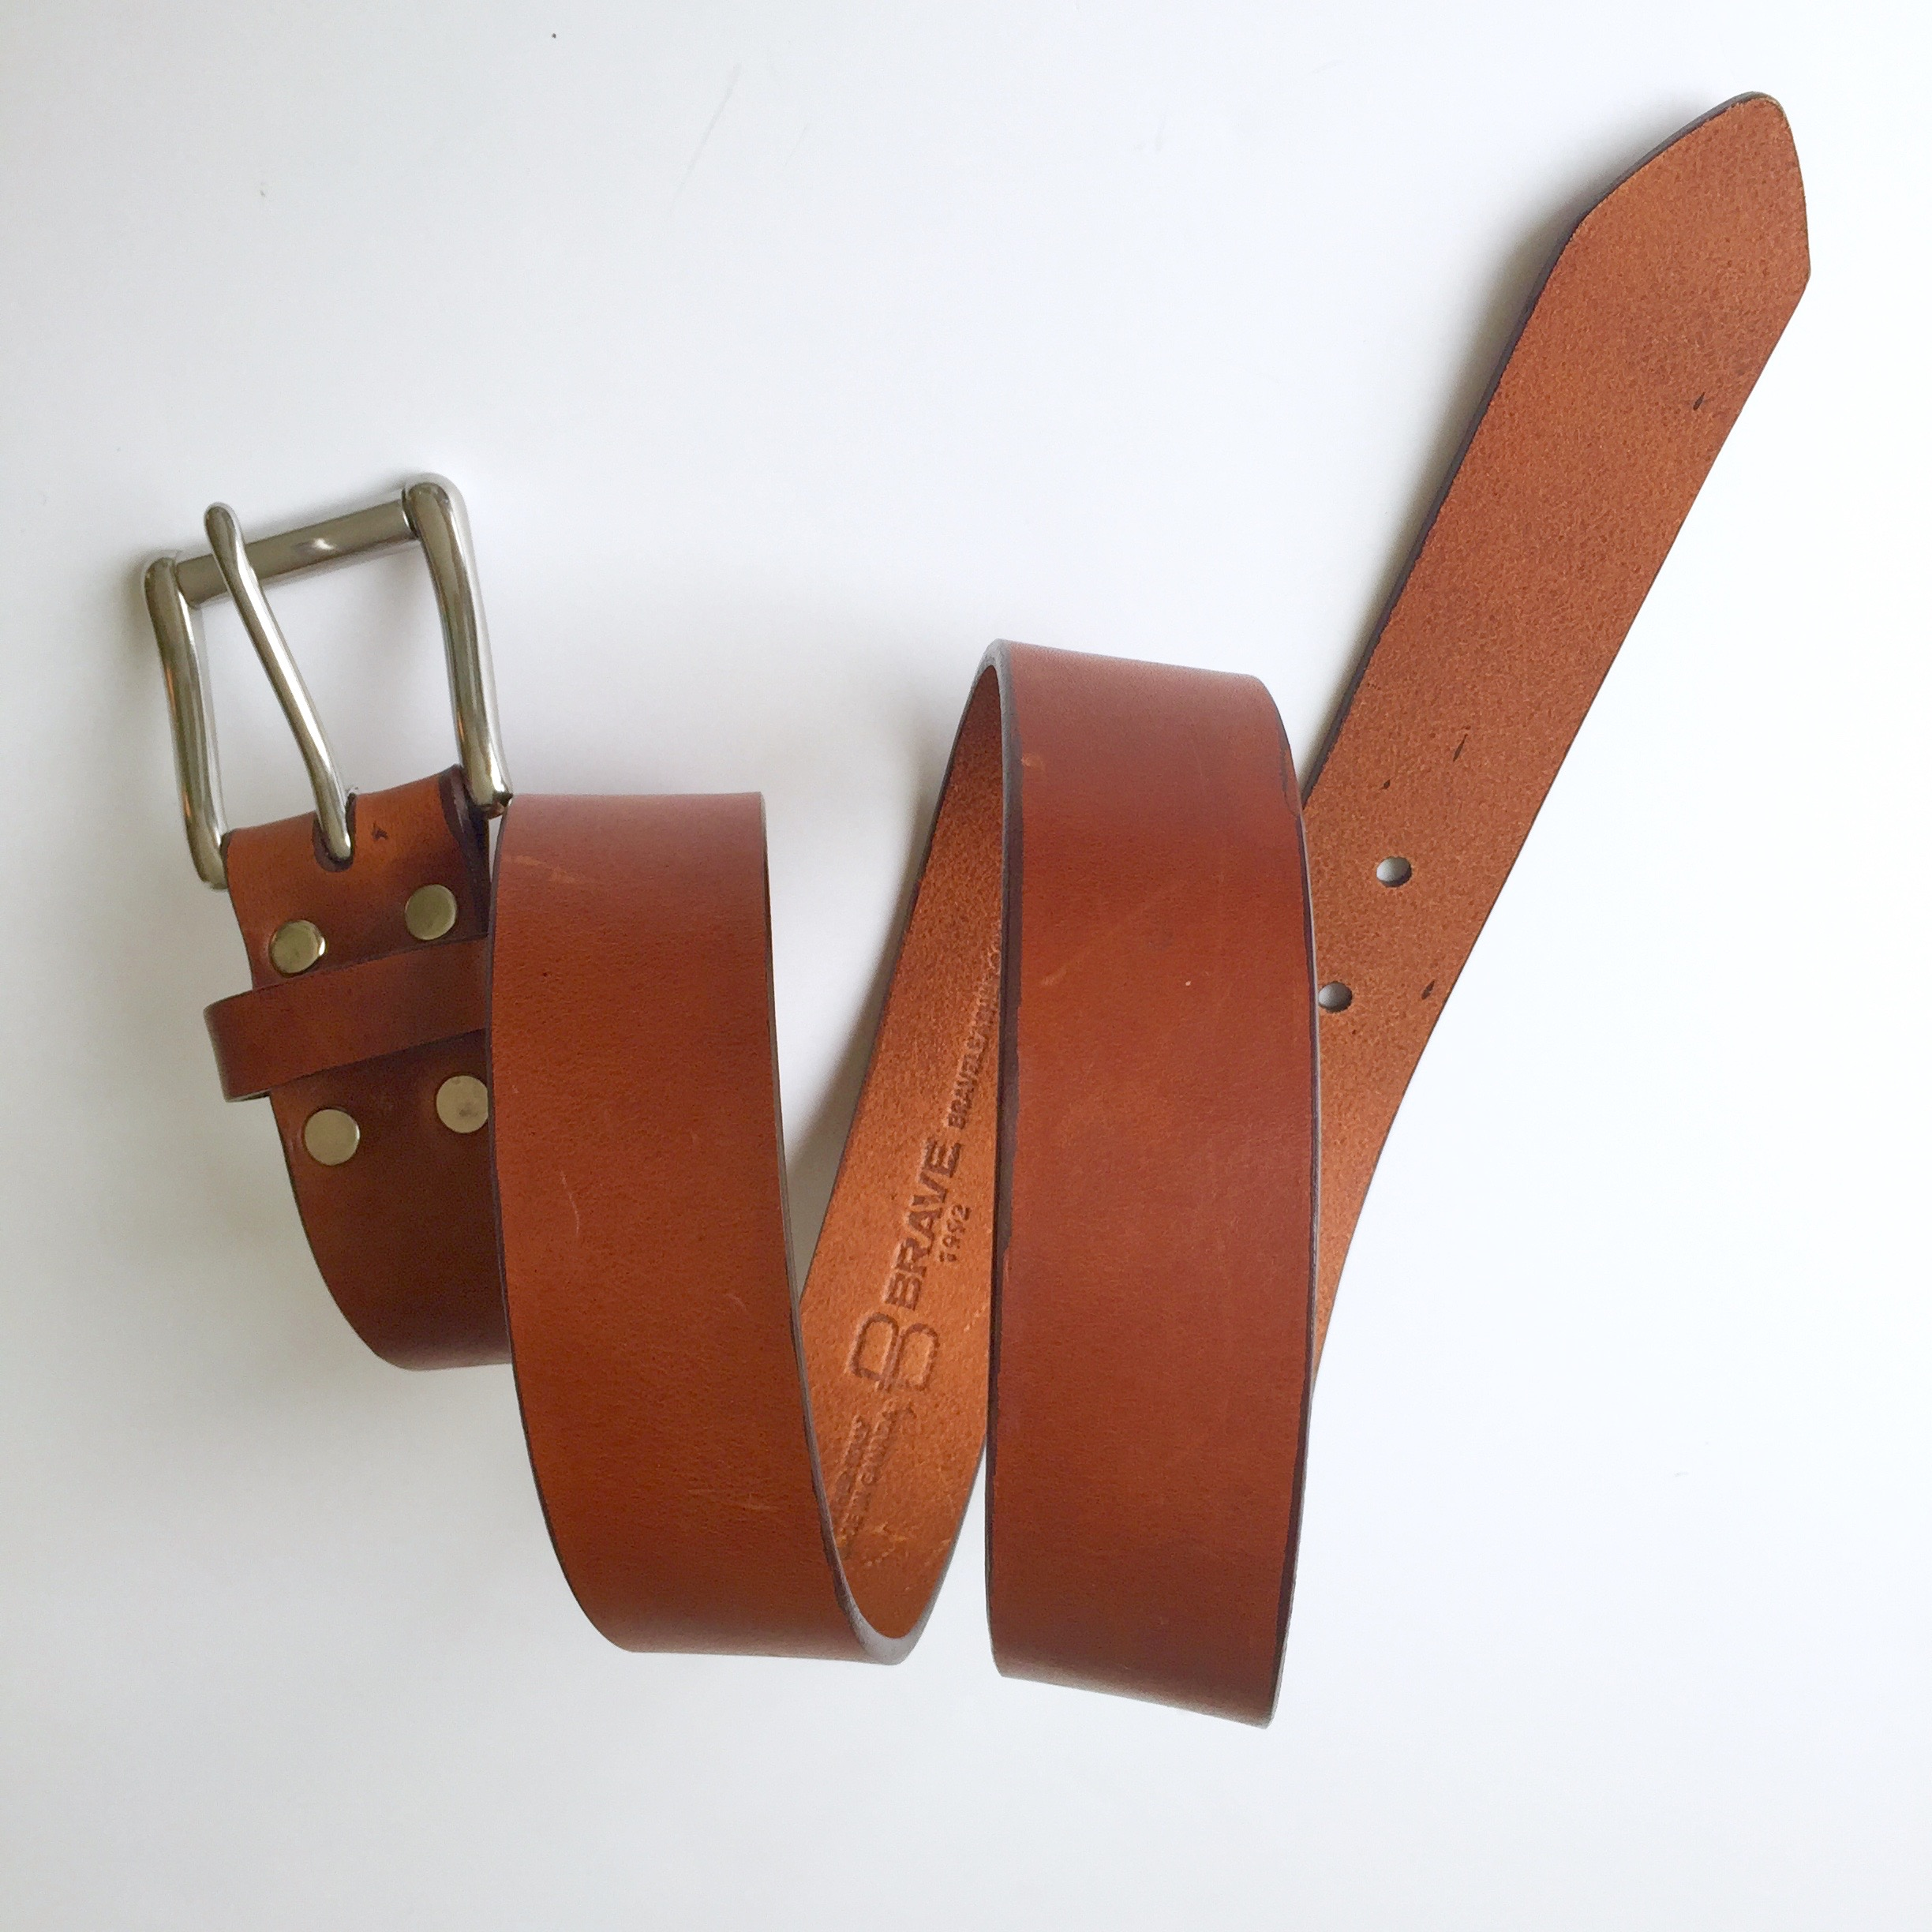 Brave Leather Classic belt in Brandy leather || via The Design Edit